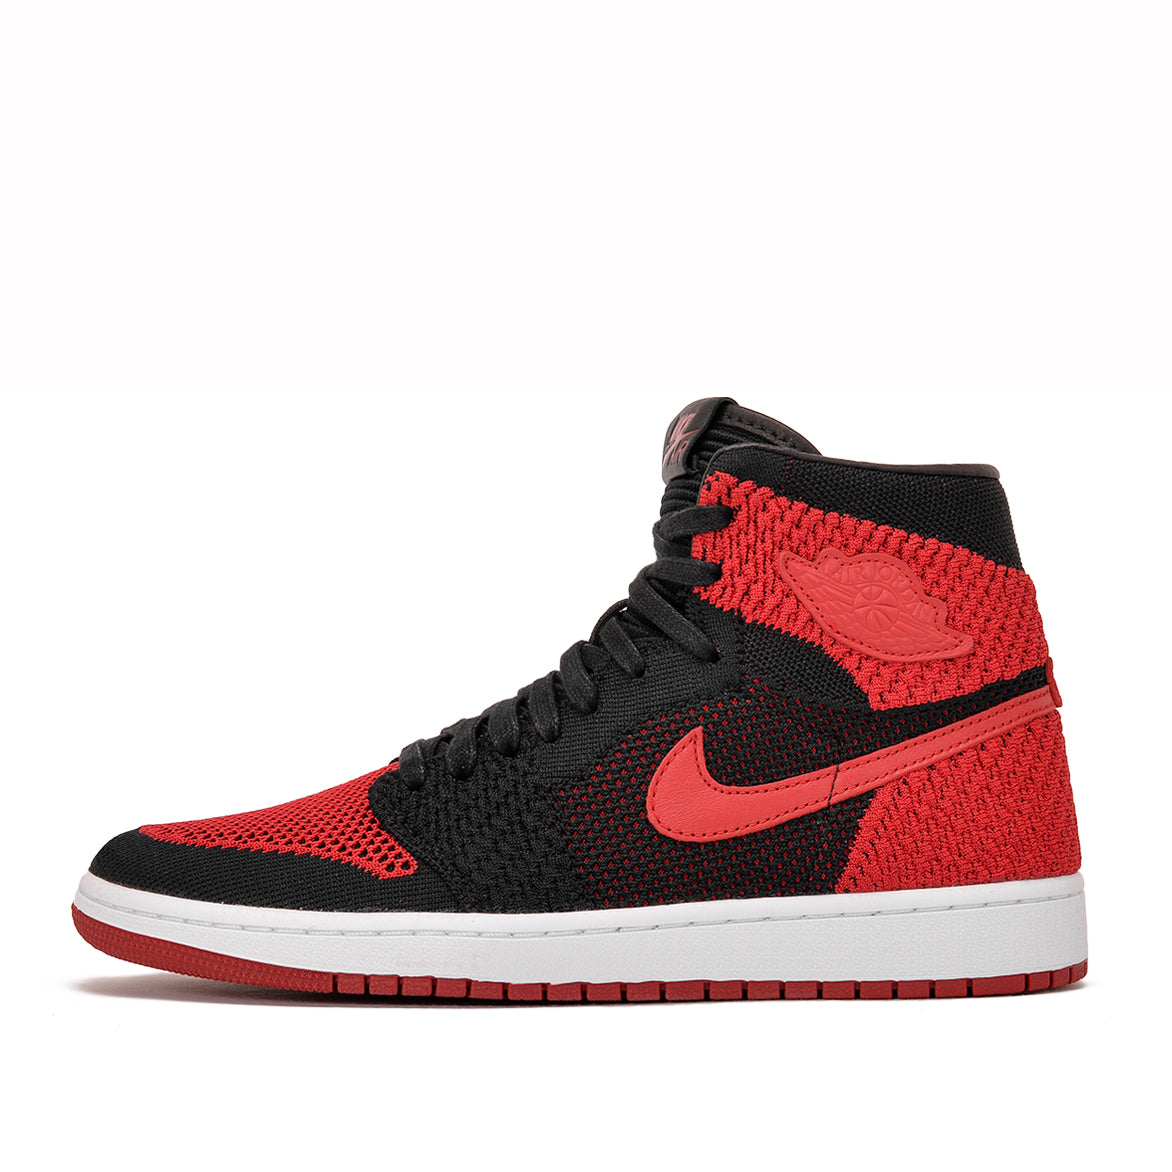 "AIR JORDAN 1 RETRO HI FLYKNIT ""BANNED"" GS"